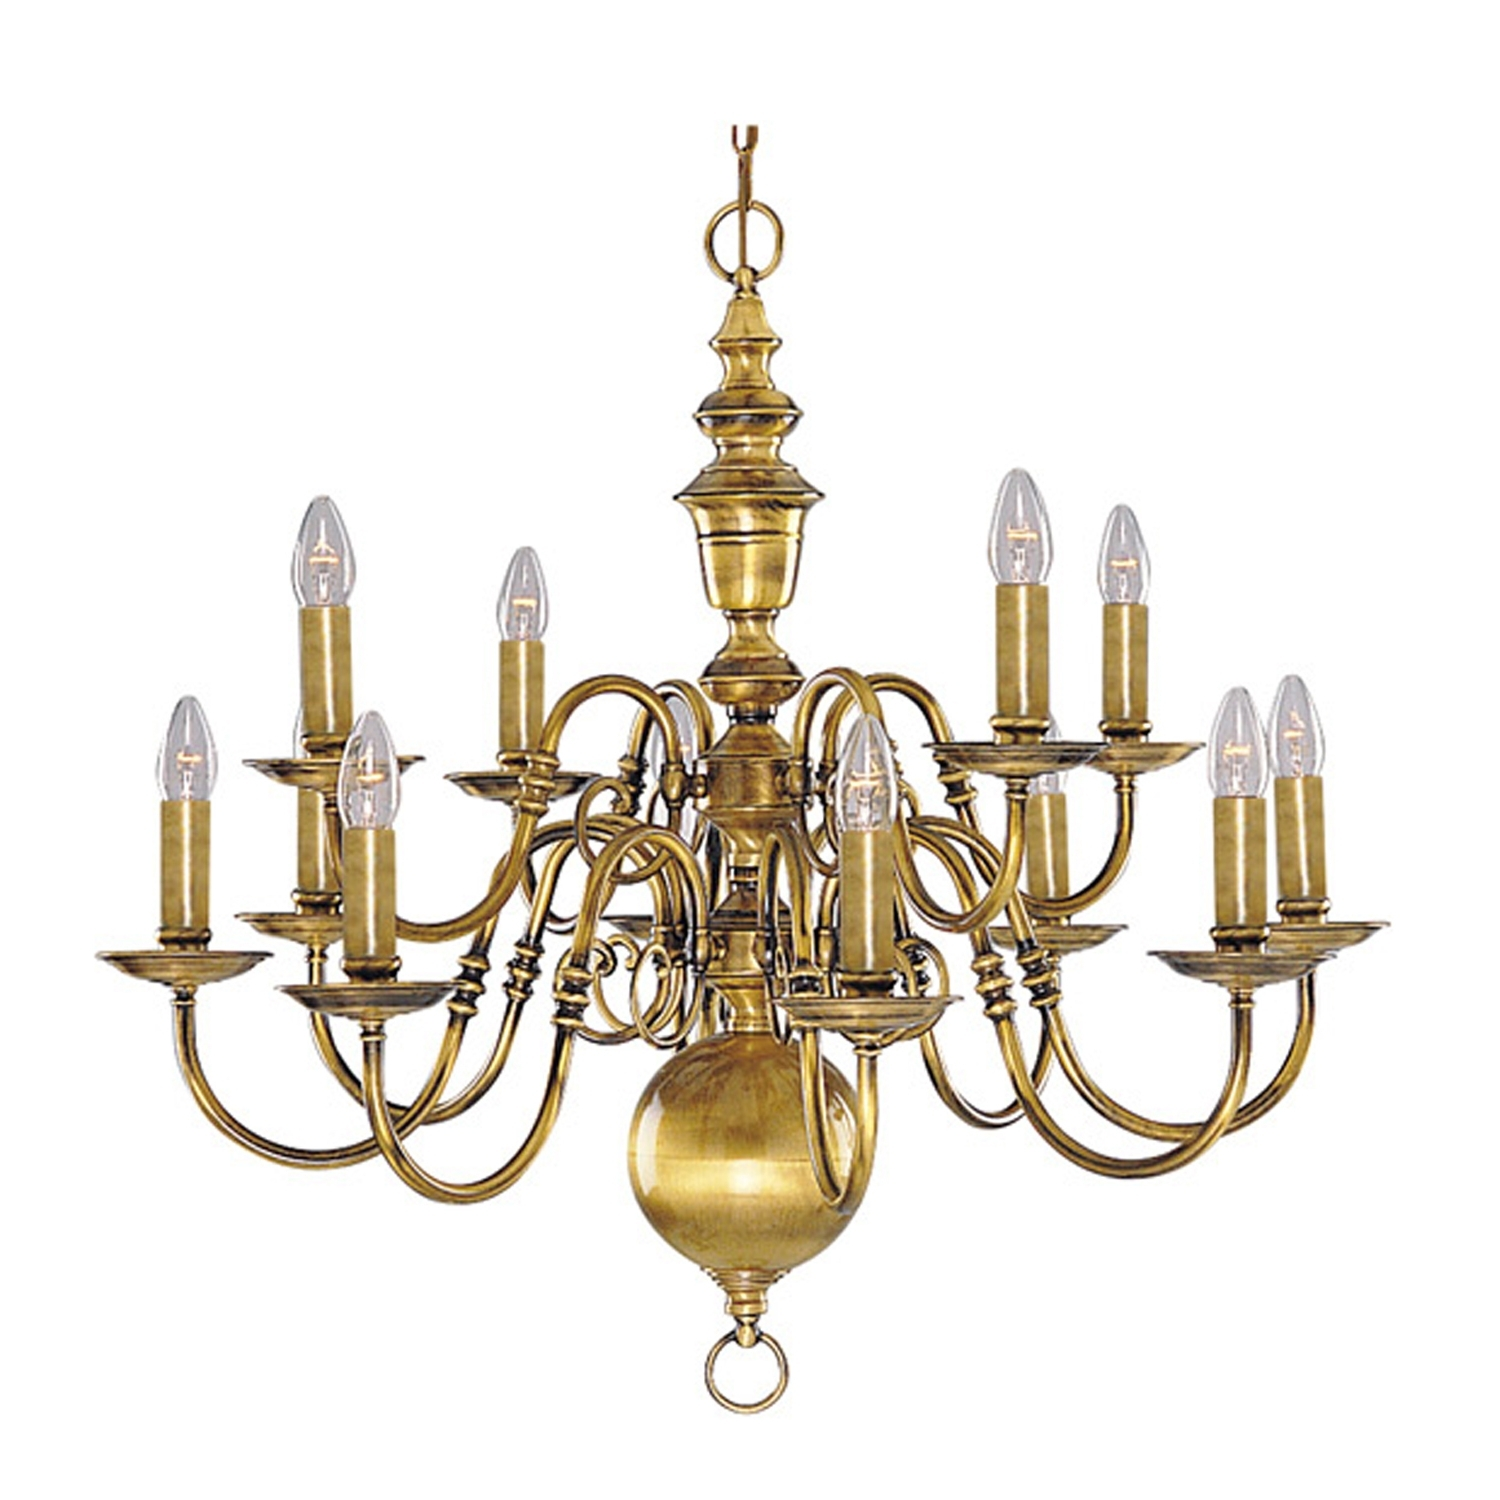 2018 Old Brass Chandelier Pertaining To Chandeliers Design : Wonderful Interesting Antique Brass Chandelier (View 1 of 20)